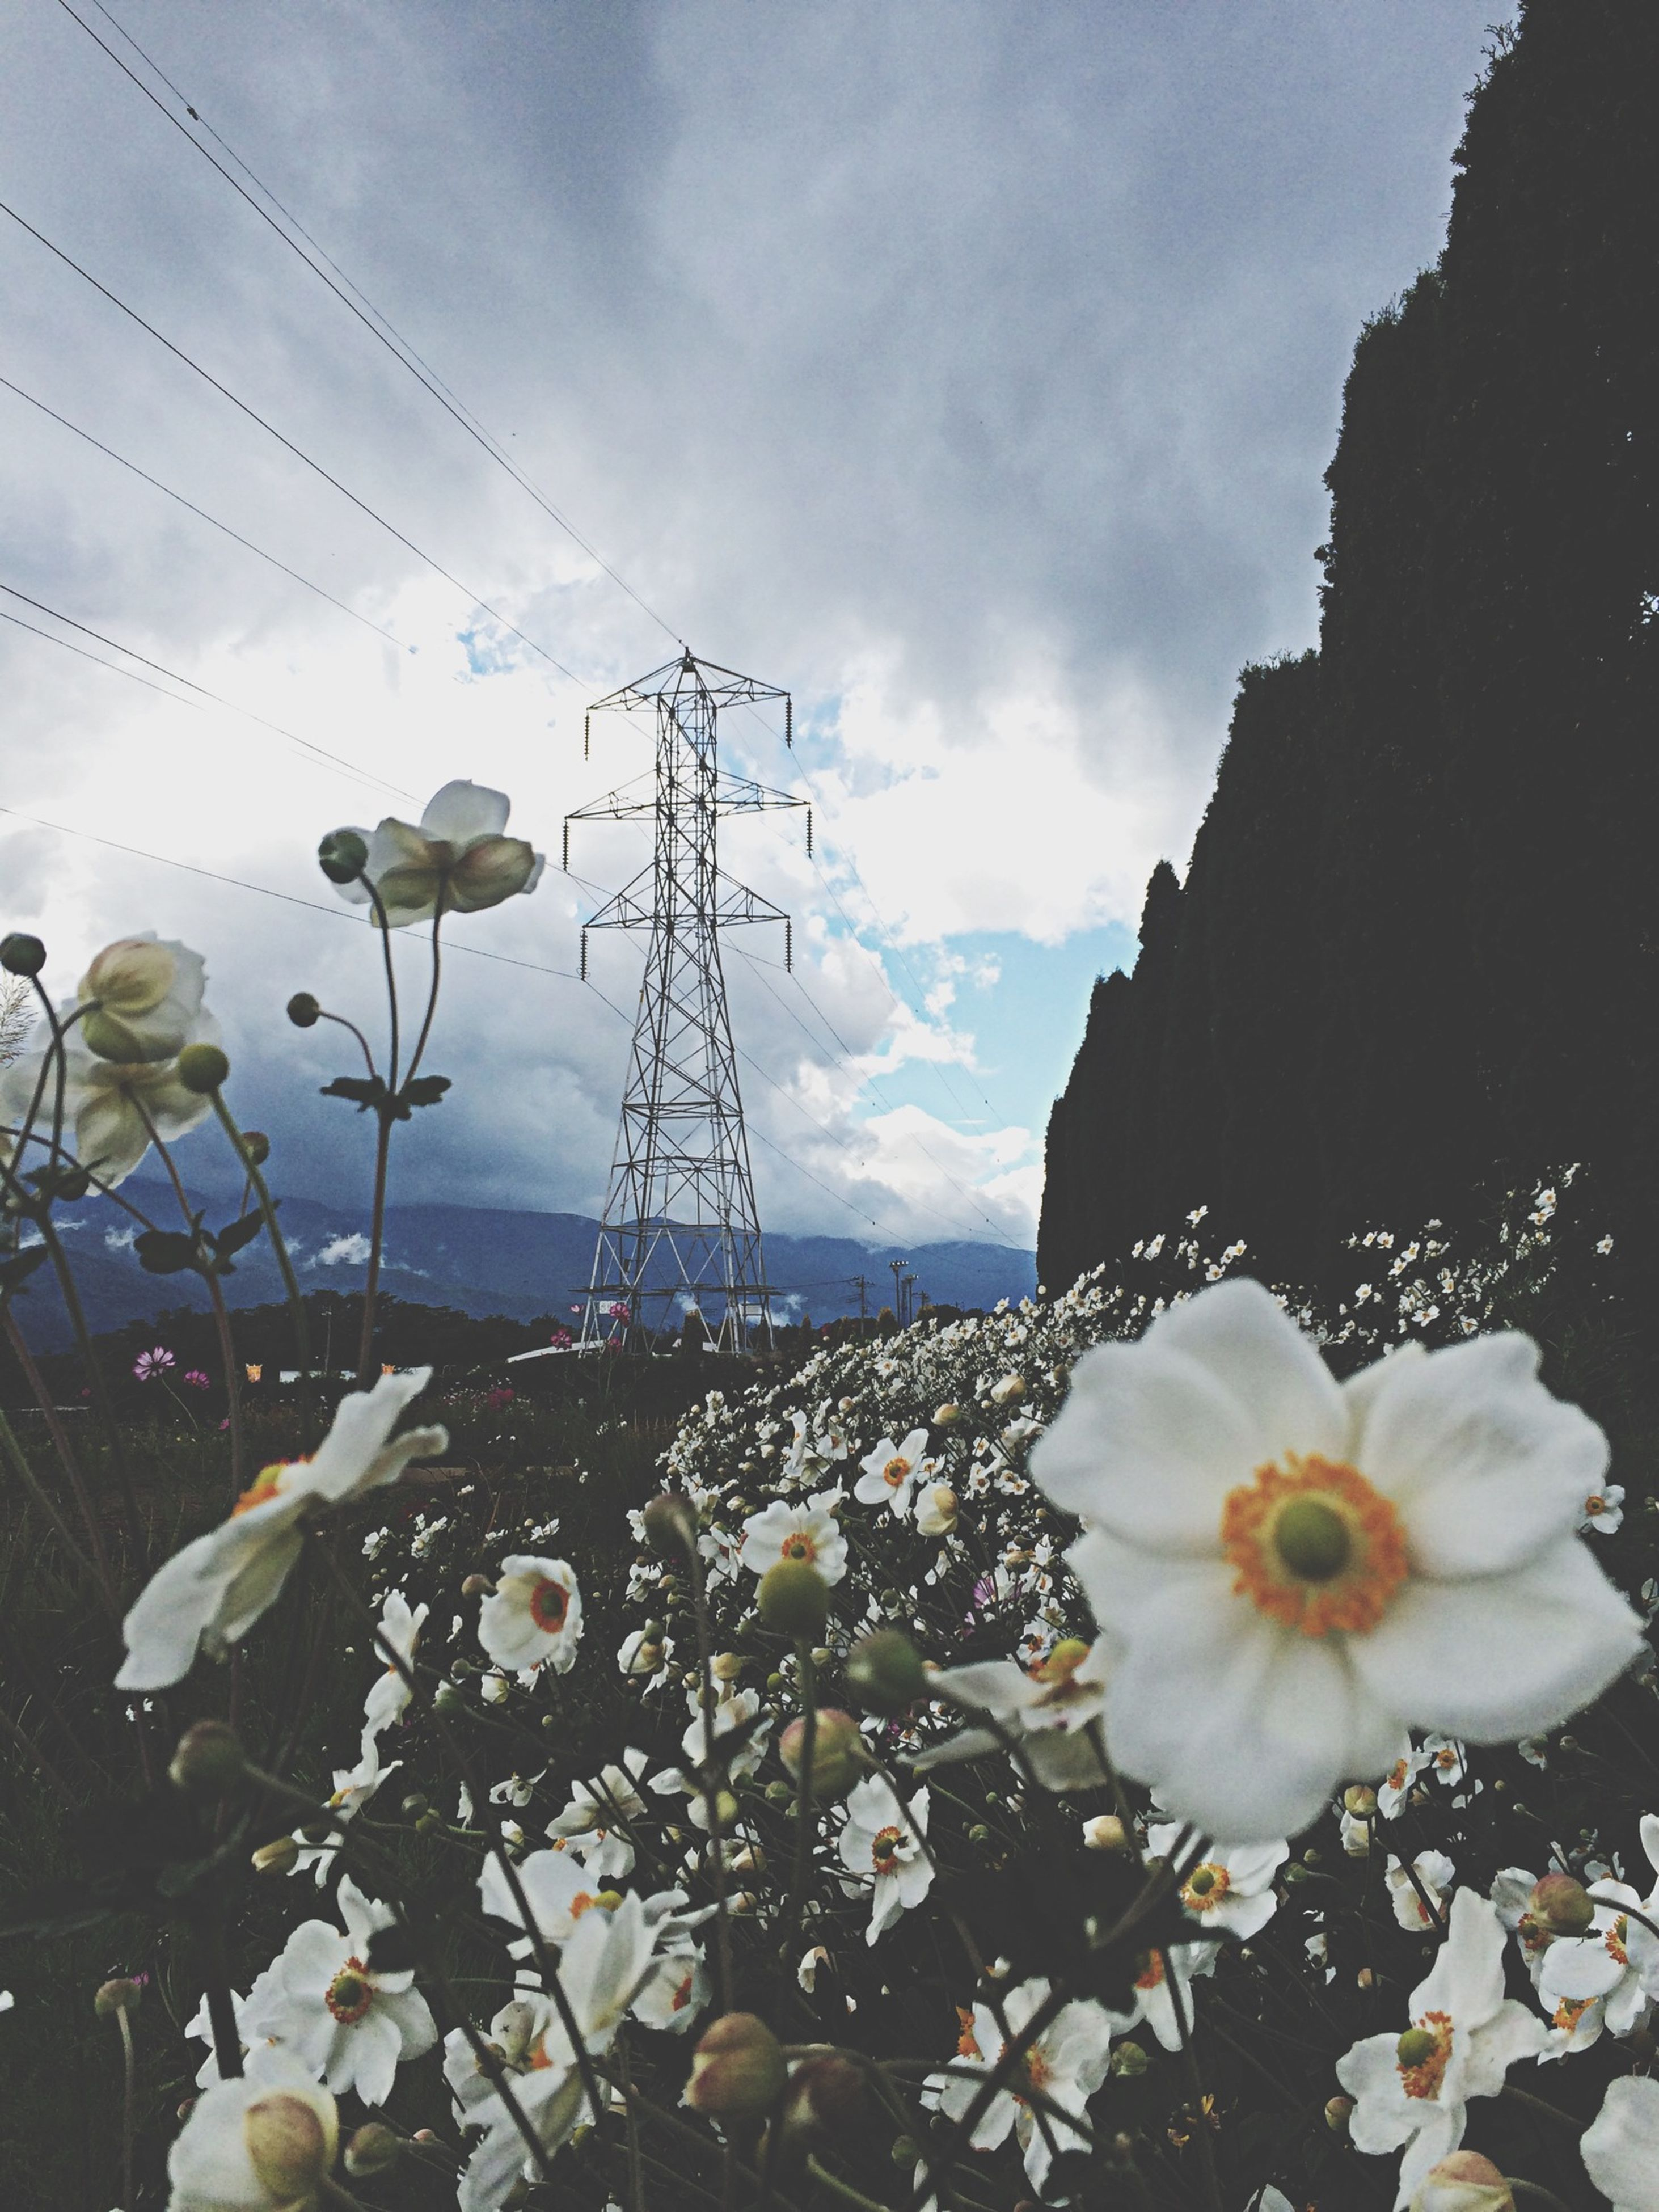 flower, sky, fragility, cloud - sky, petal, plant, nature, beauty in nature, flower head, growth, blooming, water, cloudy, freshness, day, cloud, outdoors, no people, stem, close-up